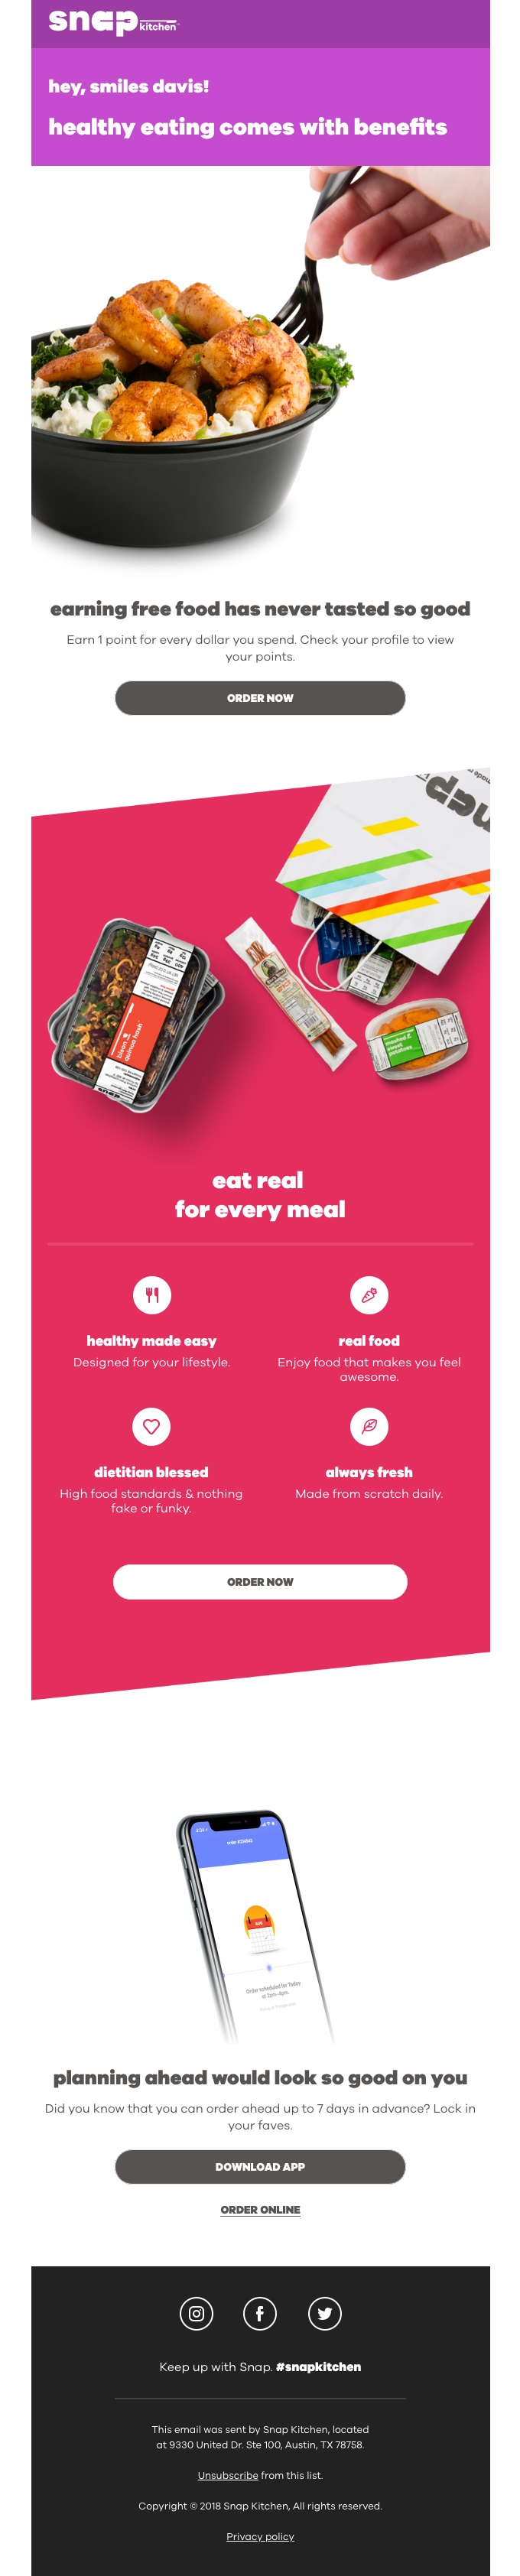 Earn Free Food Promotion with Snap Kitchen